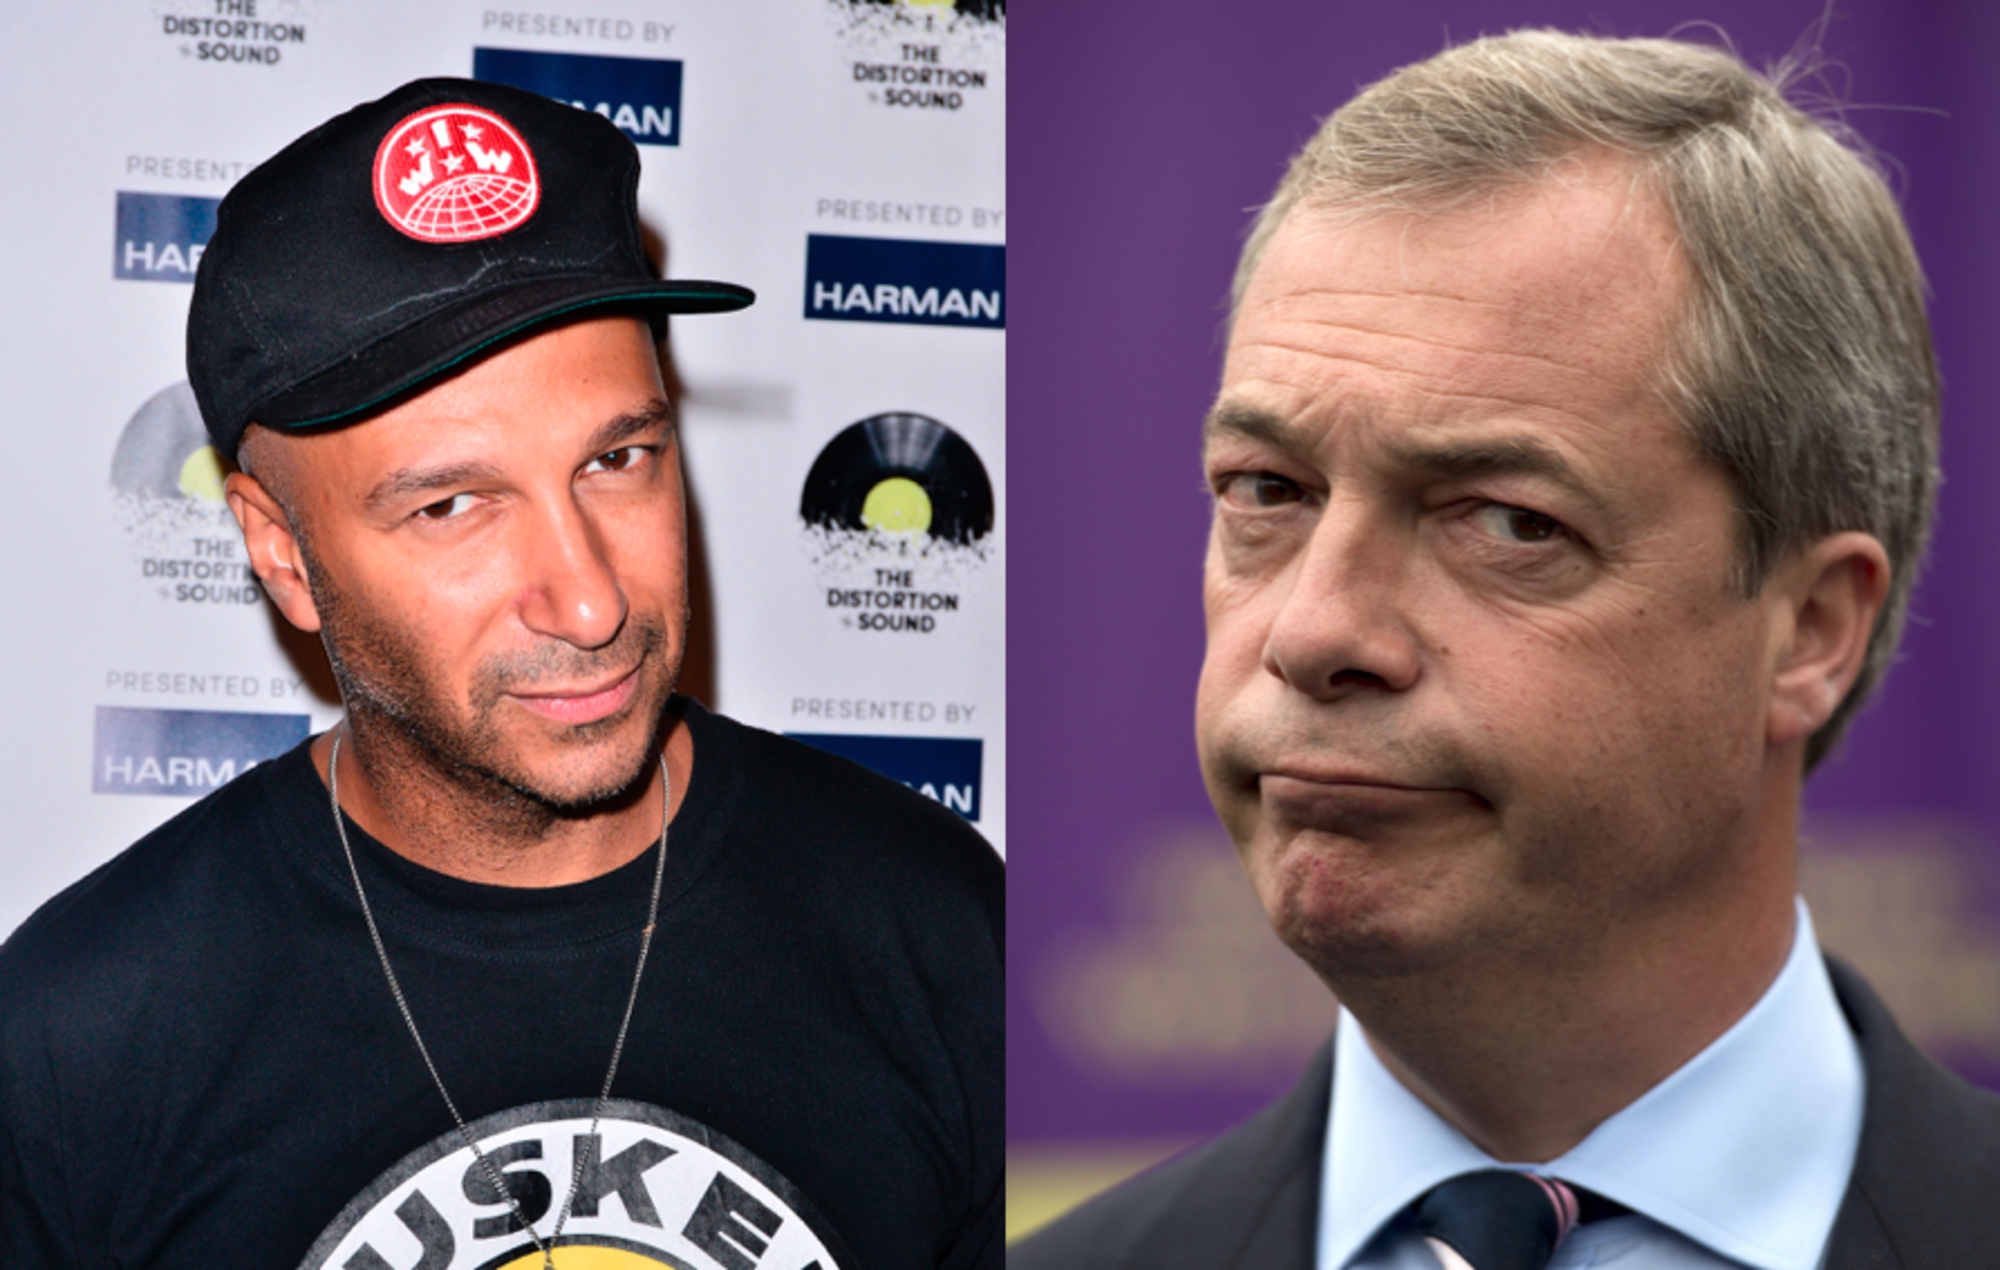 Tom Morello and Nigel Farage